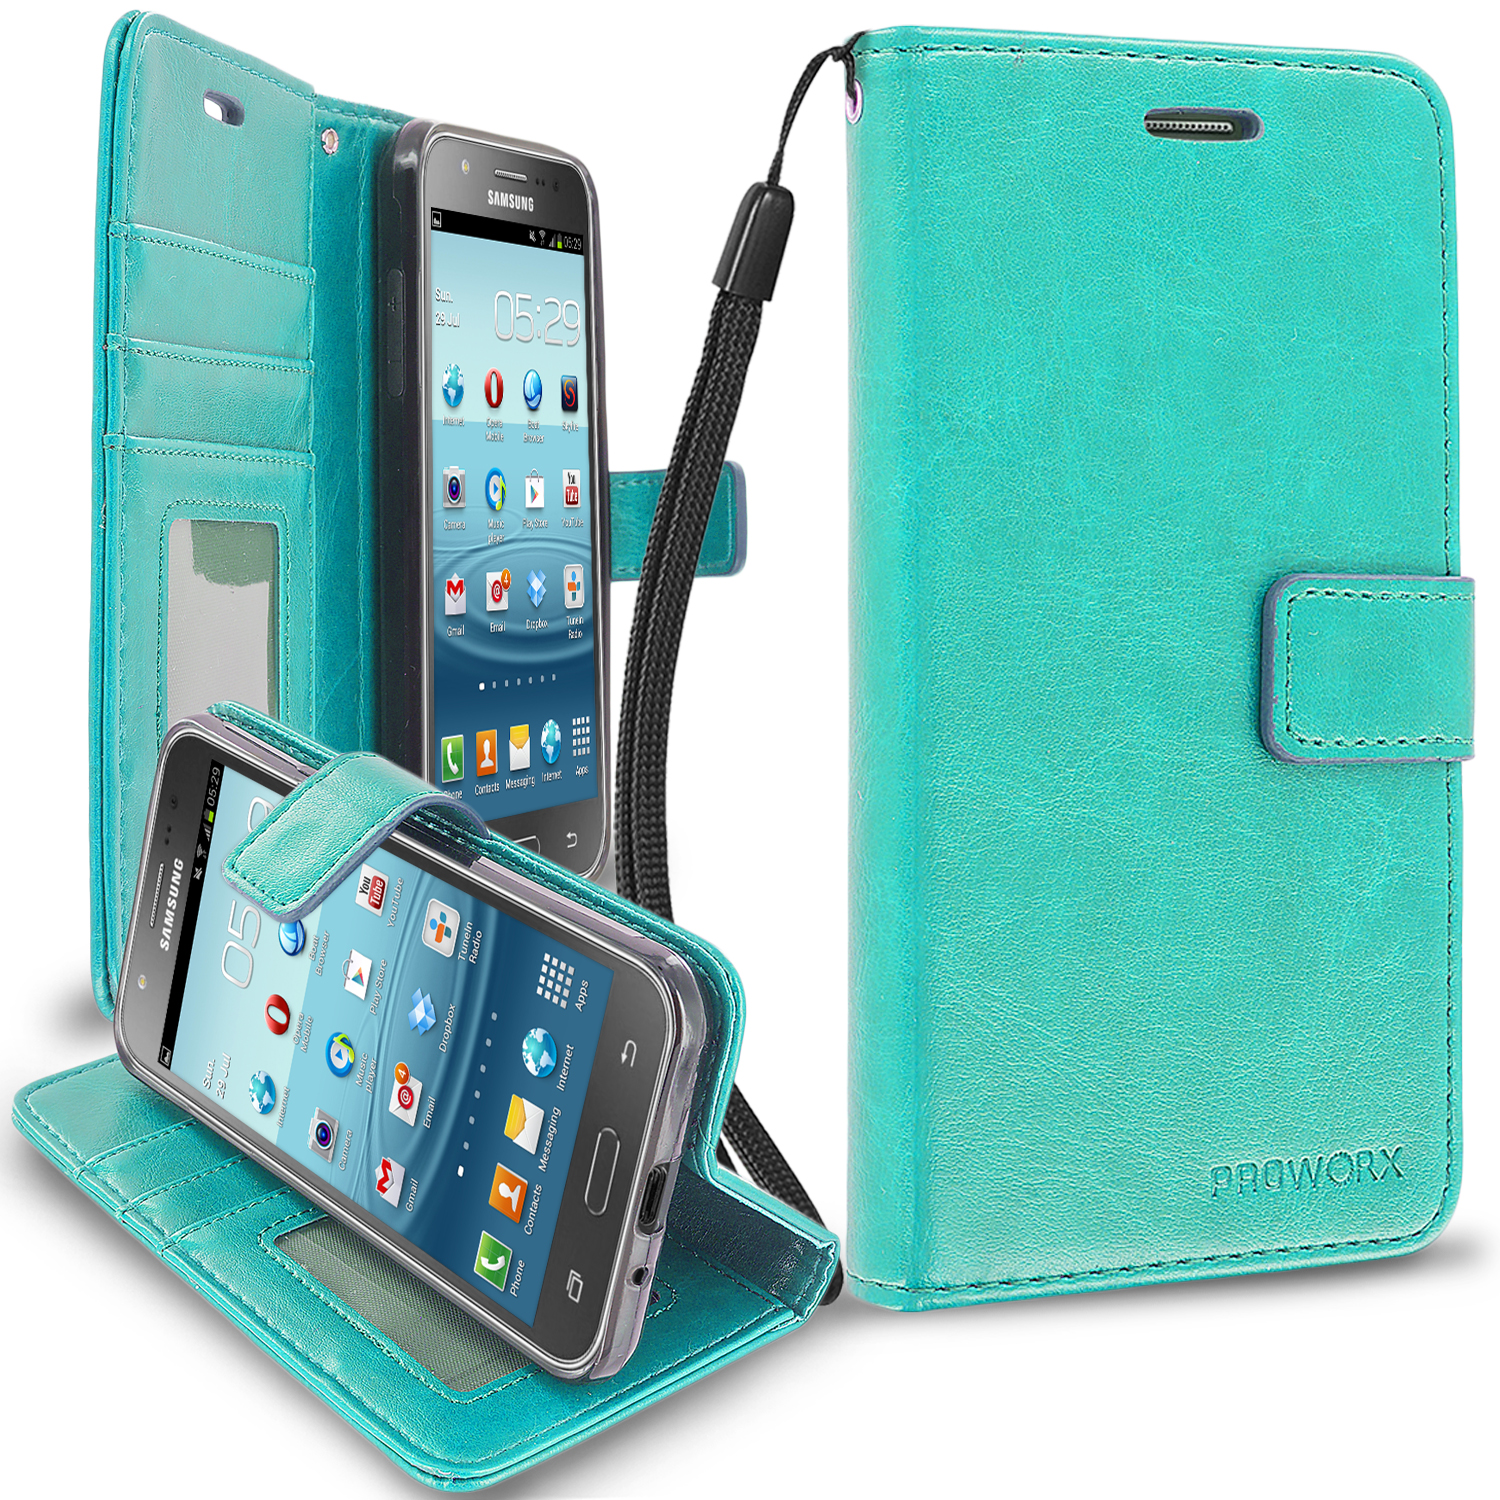 Samsung Galaxy J3 2016 Amp Prime Express Prime J3V Mint Green ProWorx Wallet Case Luxury PU Leather Case Cover With Card Slots & Stand